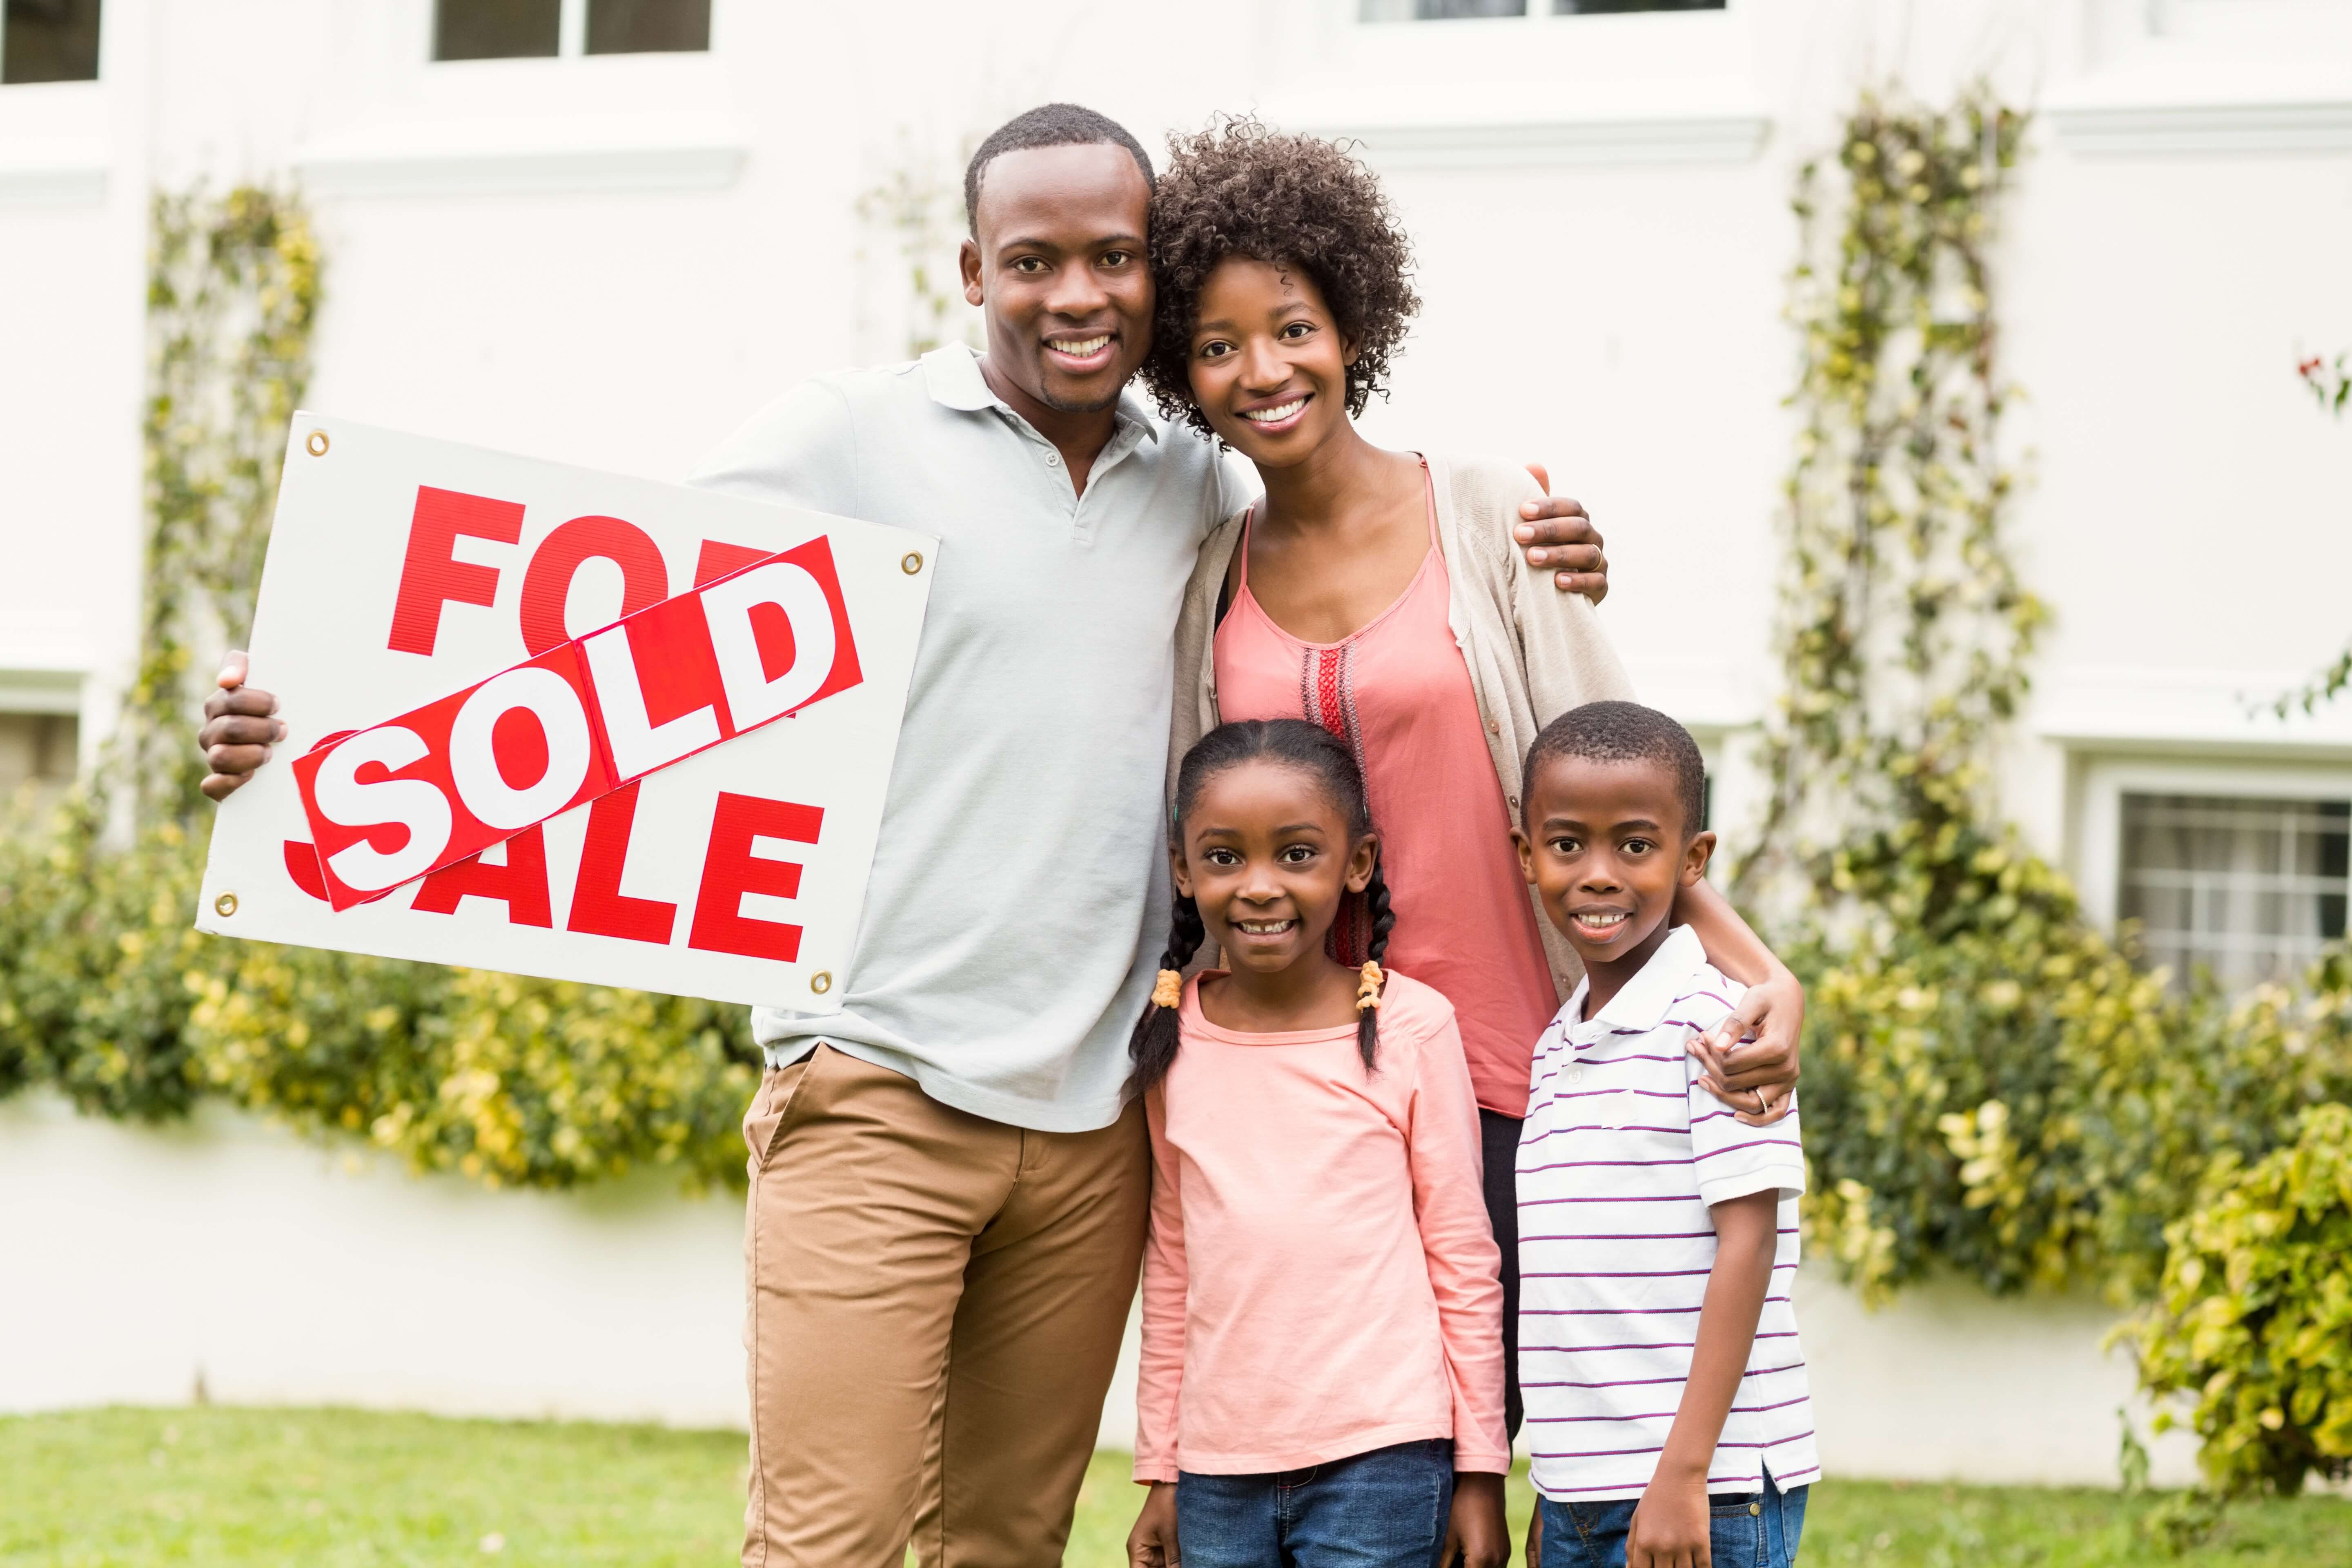 When you sell your home, it should be an enjoyable experience. That isn't always the case. Follow this guide to ensure your sale is as easy as it should be!